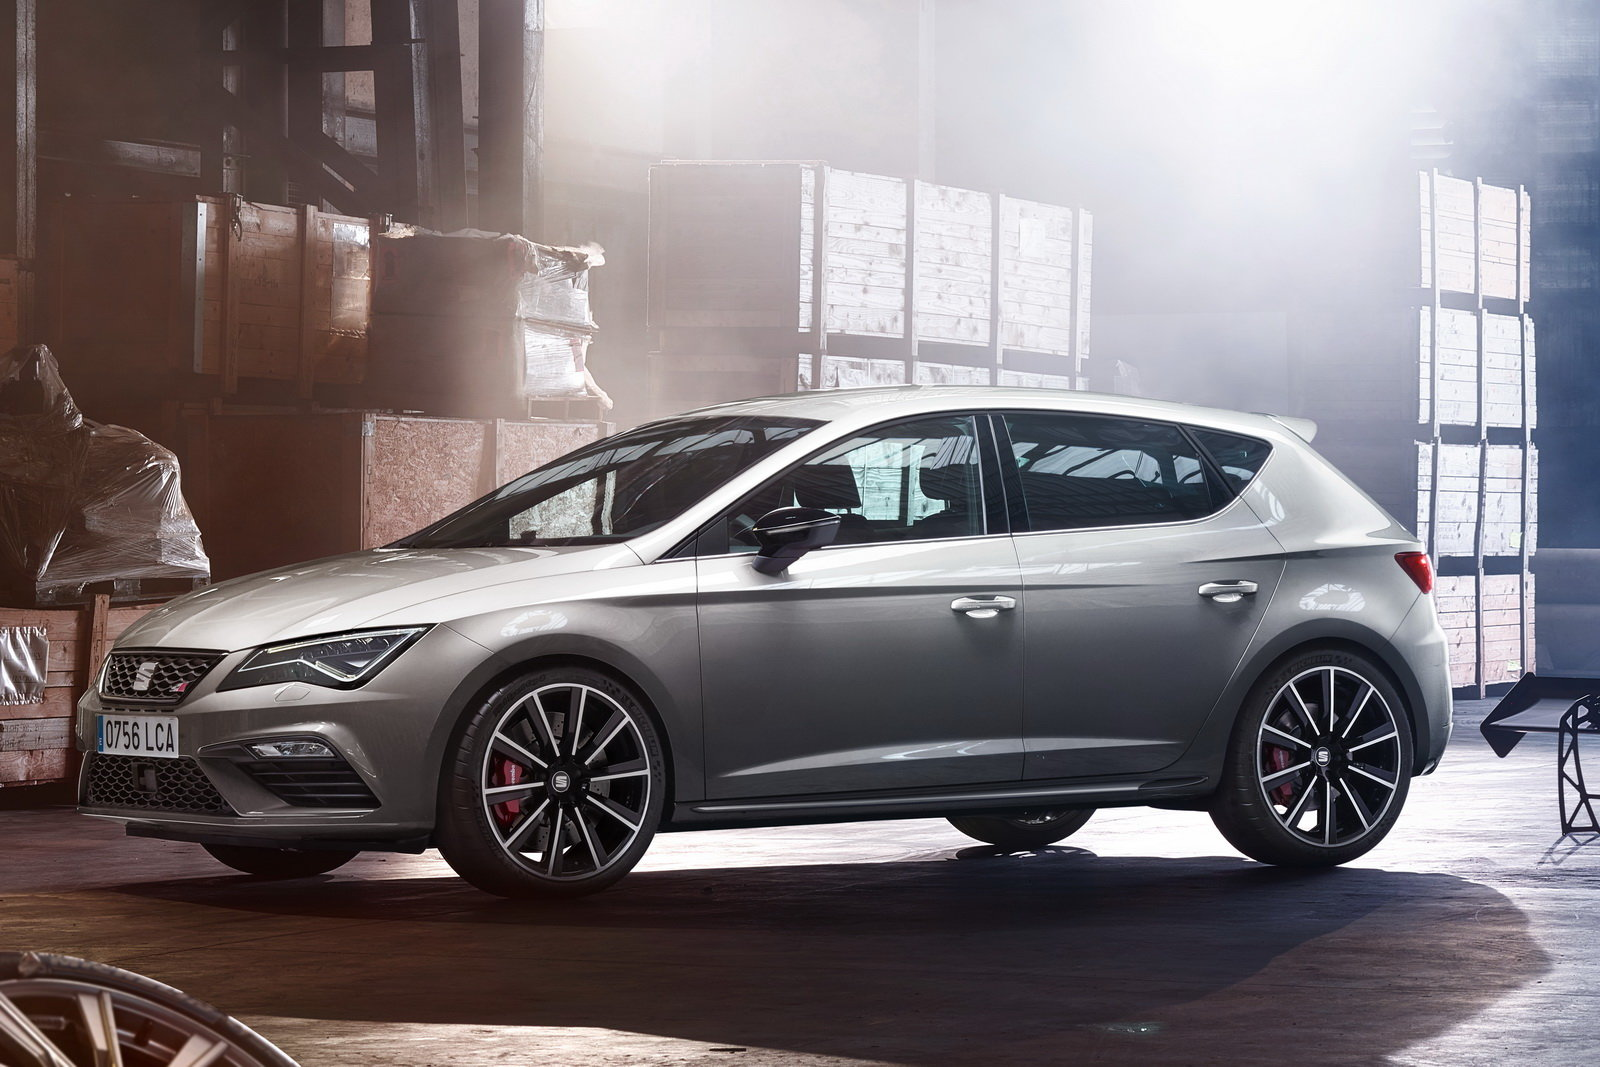 foto la seat leon cupra sale a quota 300 cv. Black Bedroom Furniture Sets. Home Design Ideas